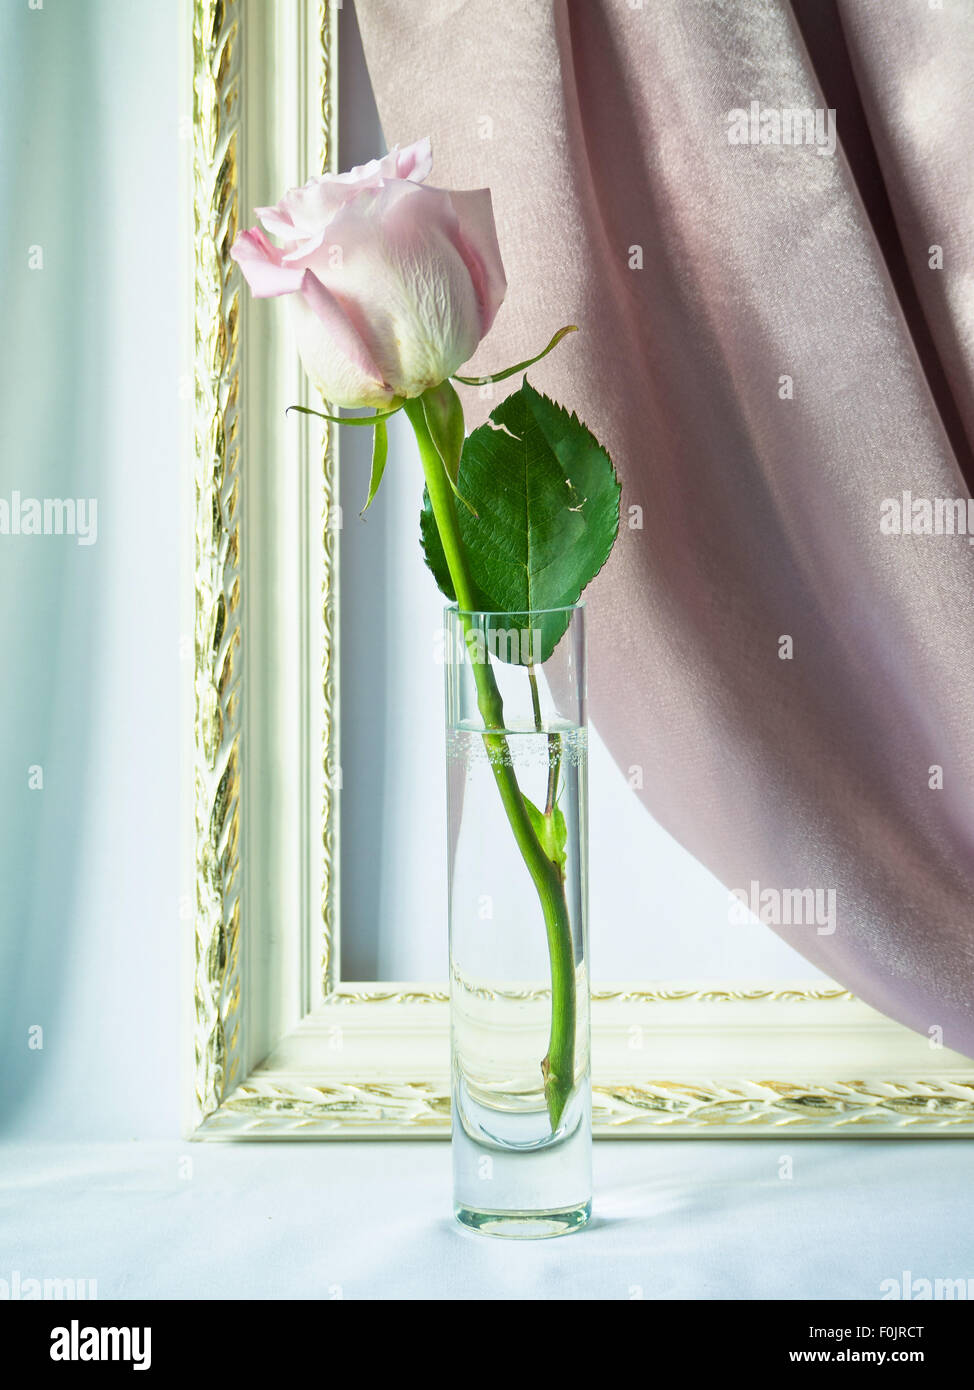 Rose in a glass vase Stock Photo